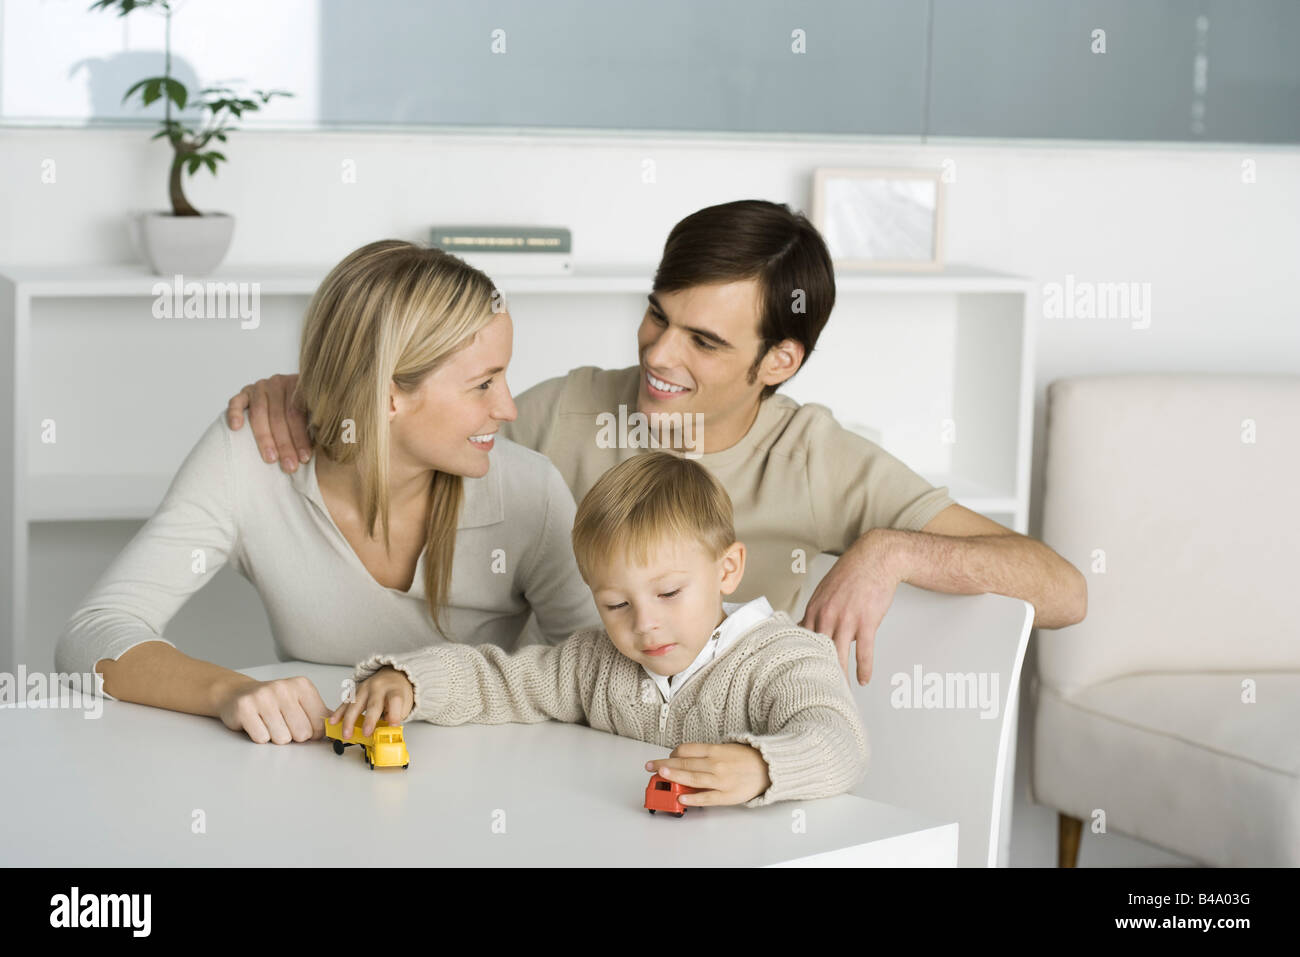 Family at table, boy playing with toy trucks, parents smiling at each other - Stock Image